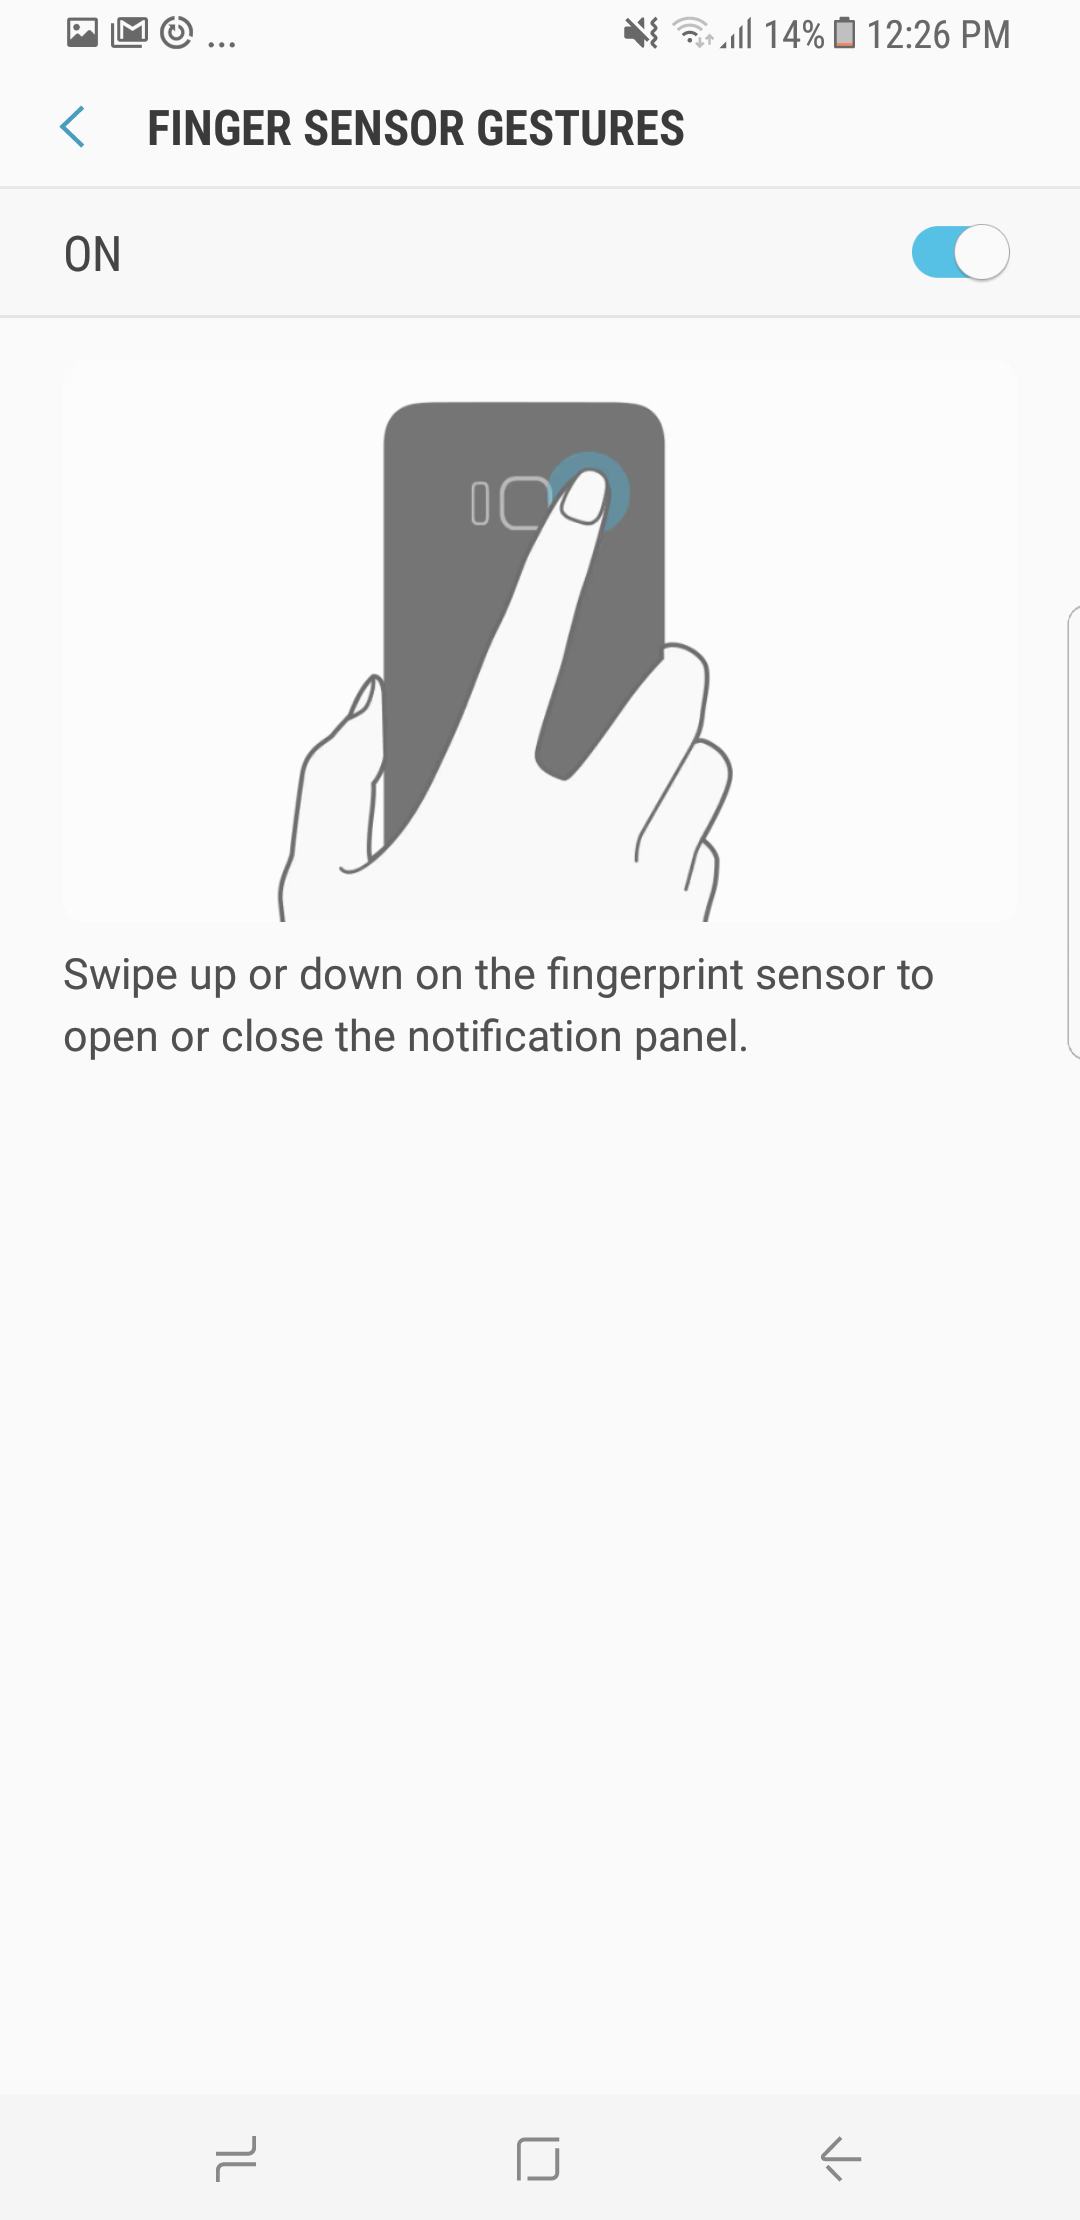 Galaxy S8 Tip: Use fingerprint sensor gestures to access the